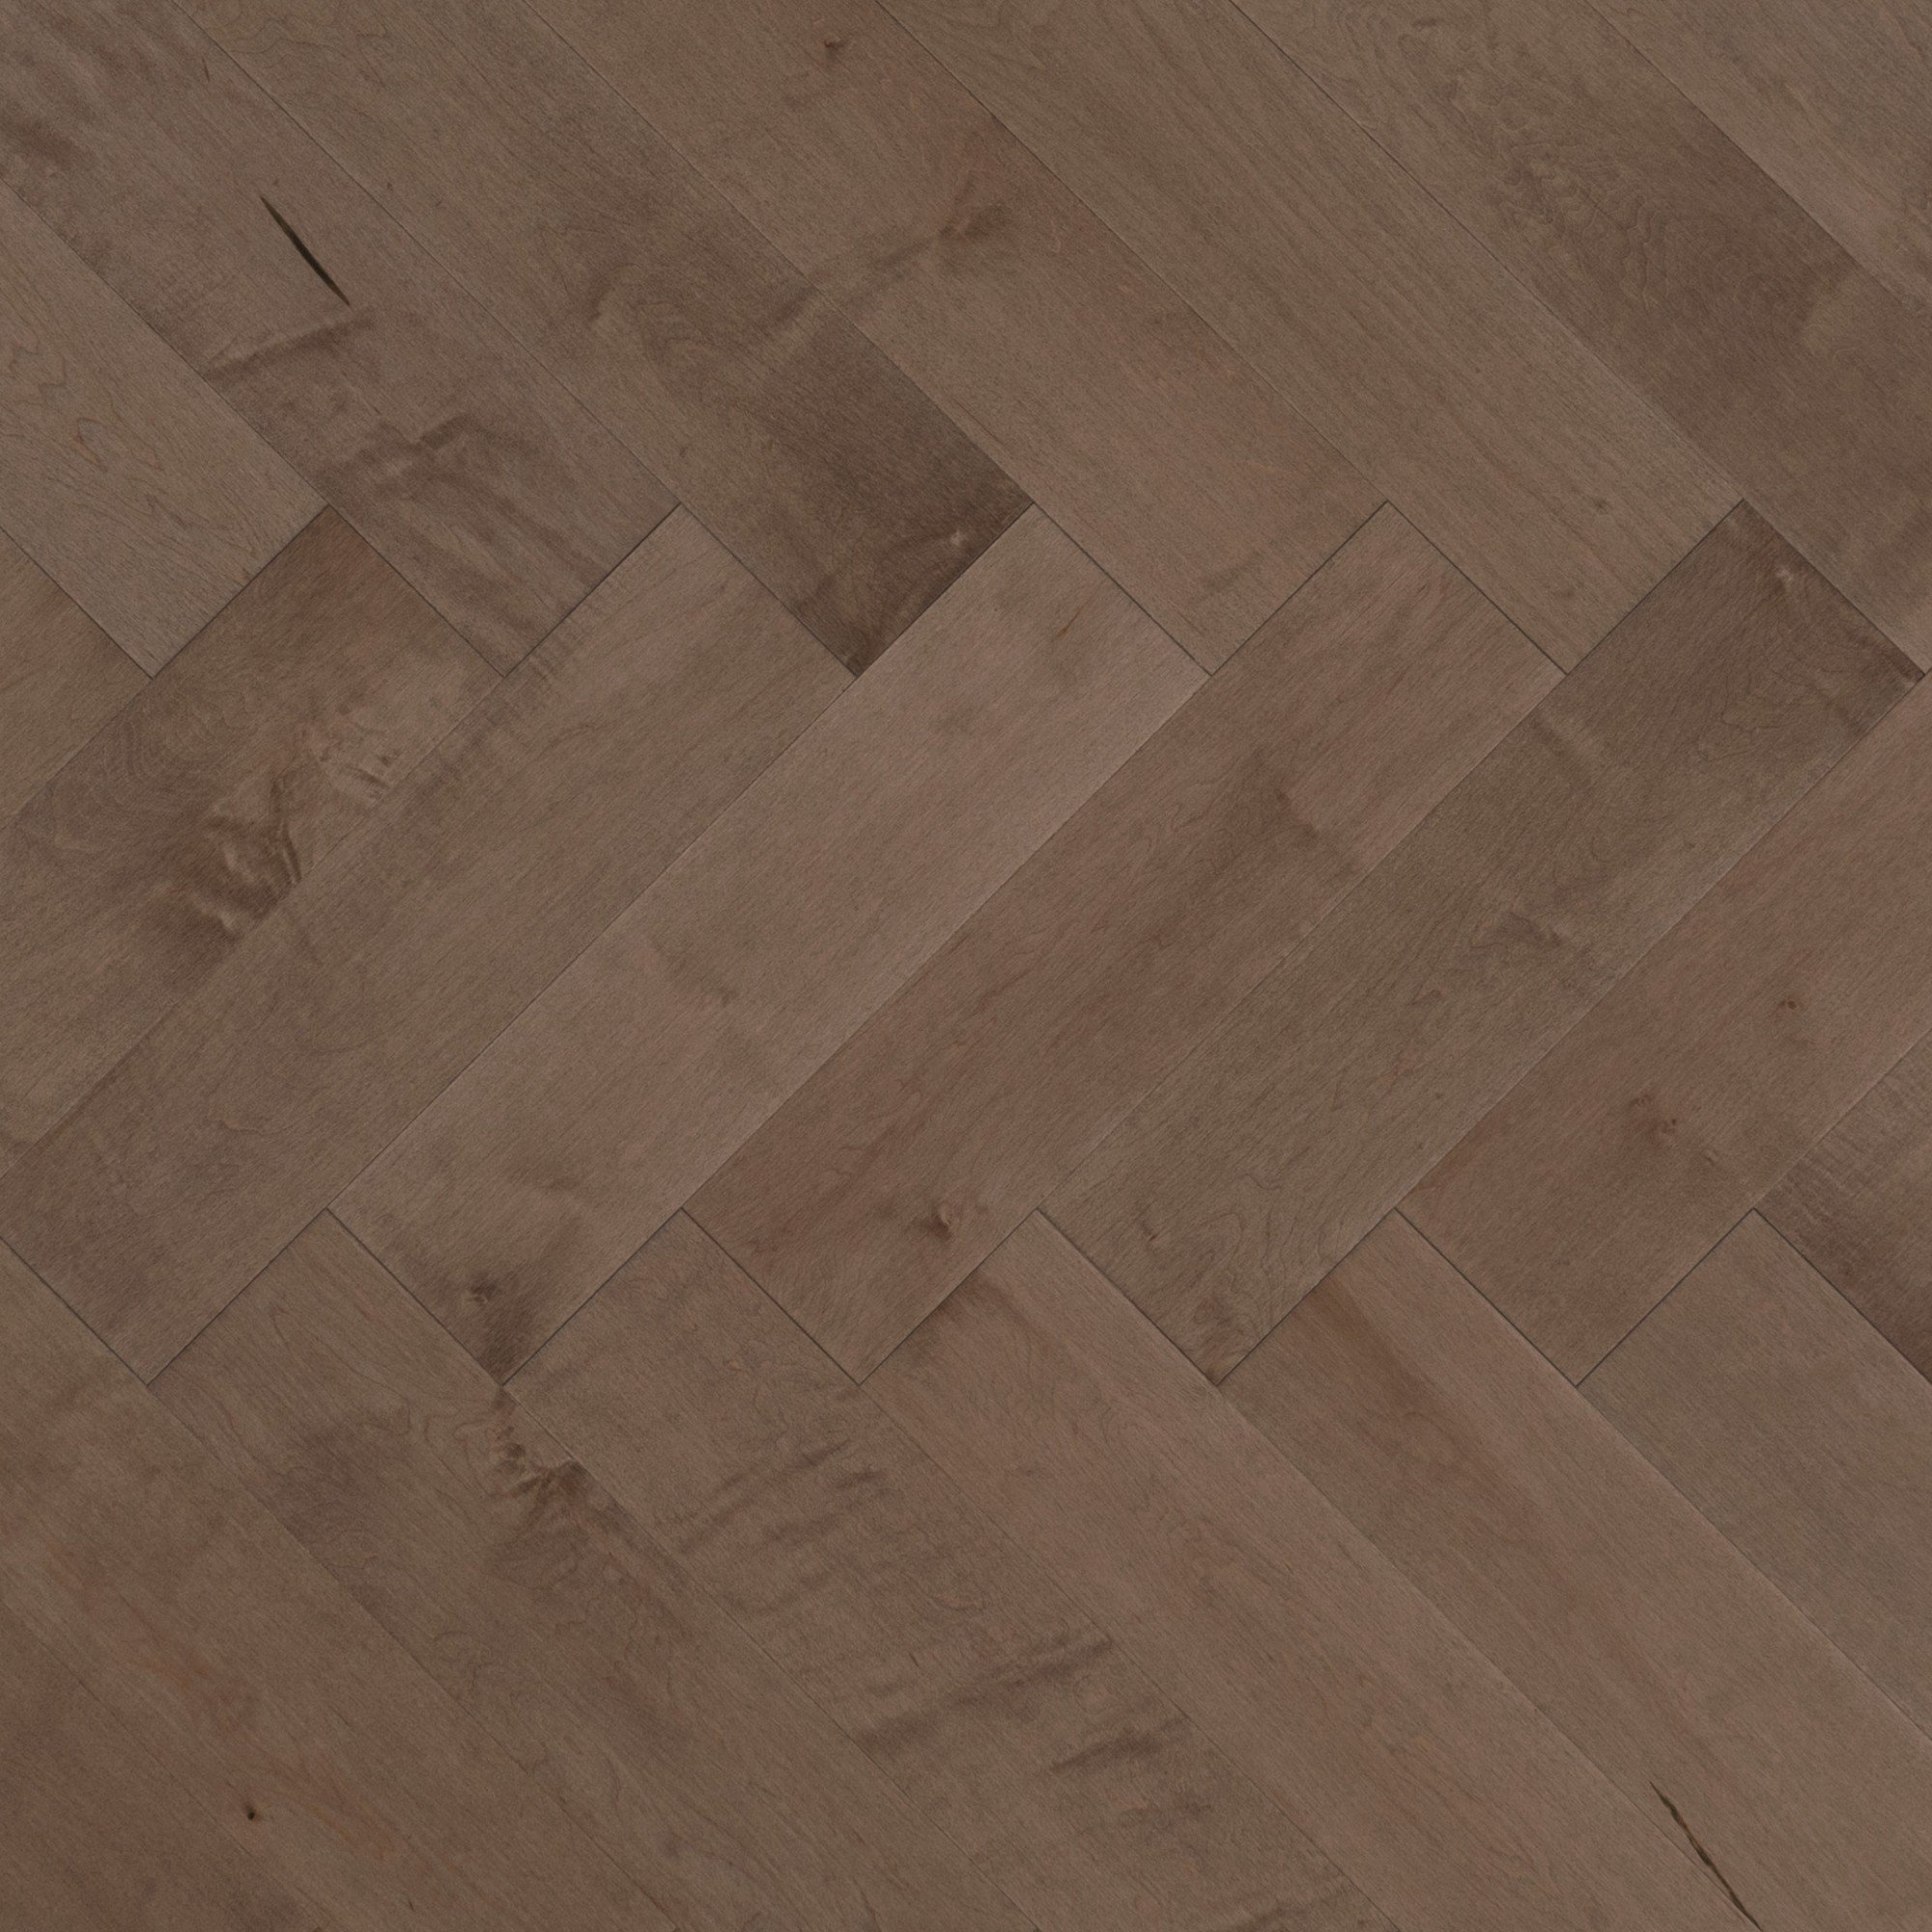 Herringbone maple greystone mirage hardwood floors for Mirage wood floors